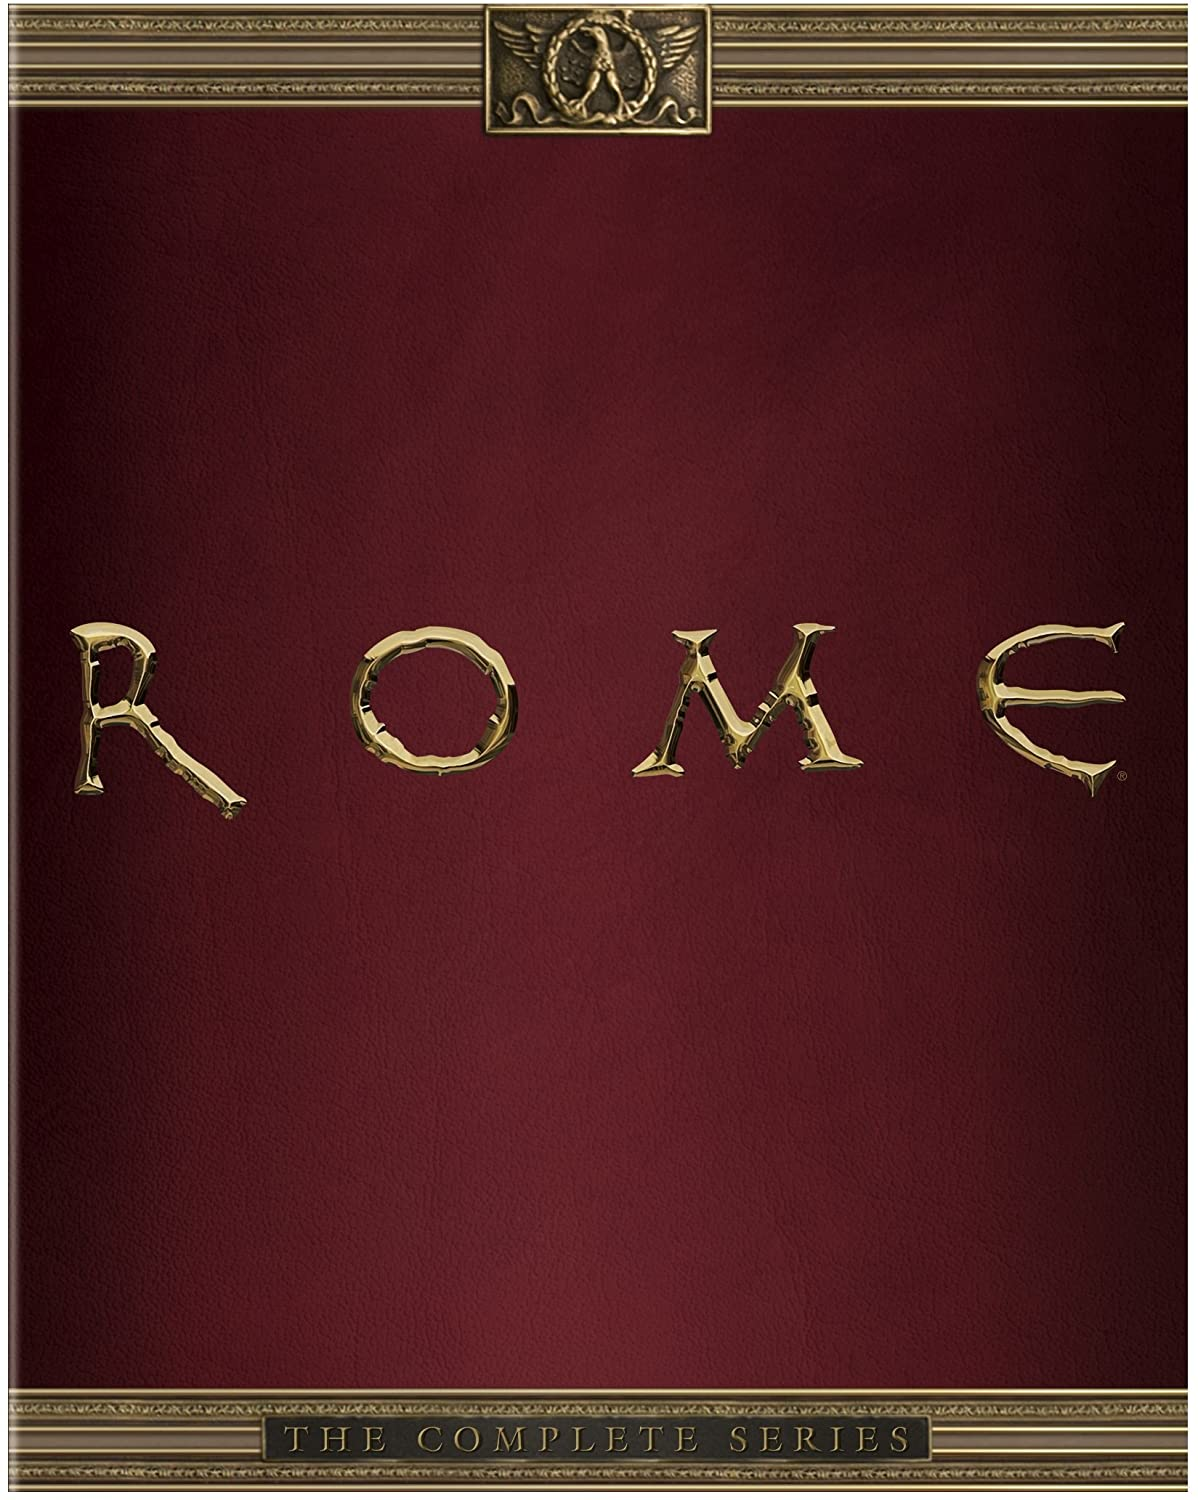 Rome: The Complete Series Various HBO 28941093 Drama